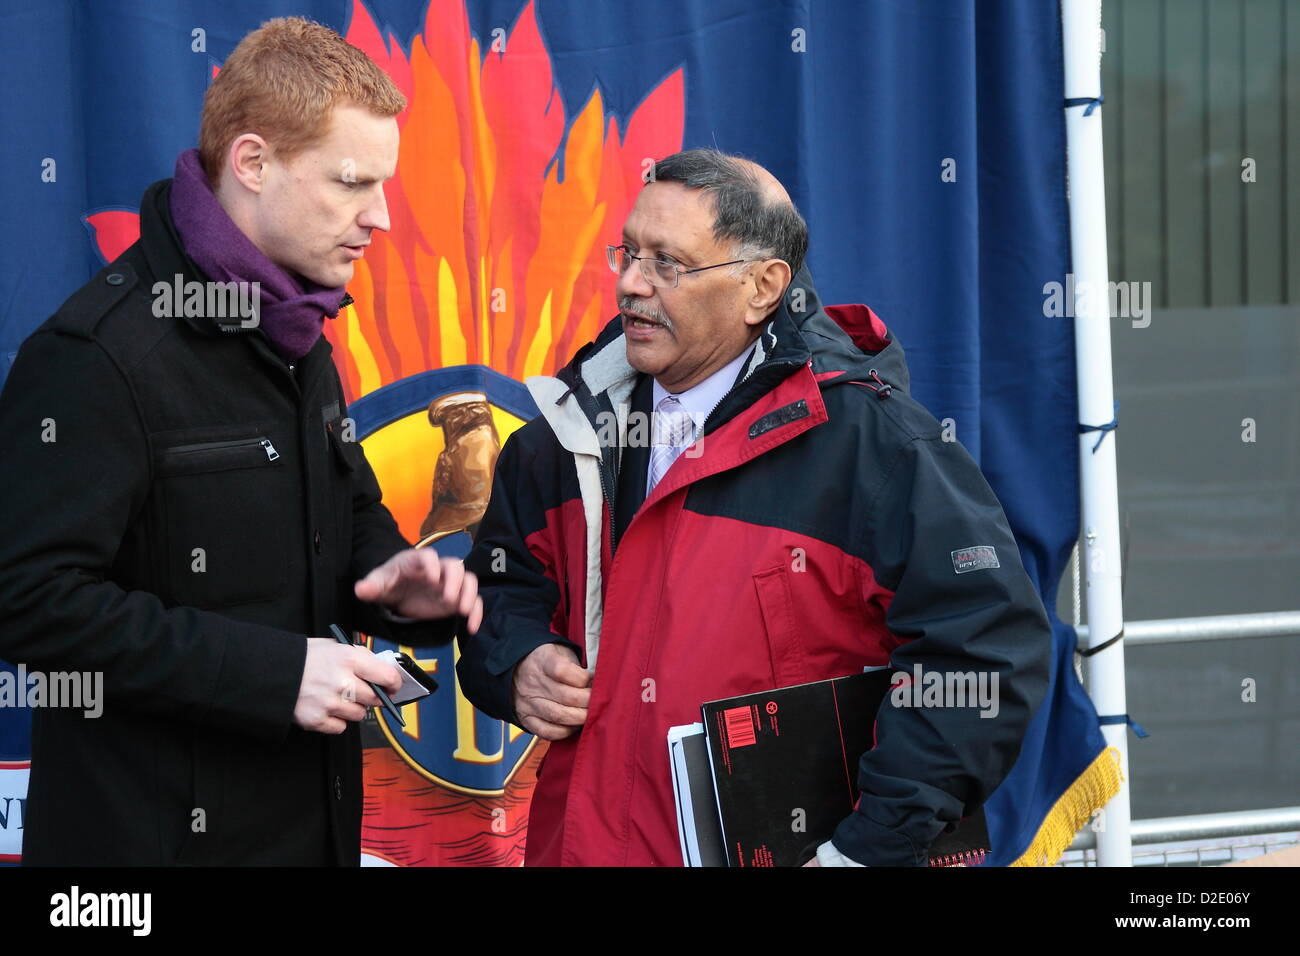 London, UK. 21st Jan, 2013. Firefighters protest outside London Fire Brigade Head Quarters as Fire Authority members - Stock Image